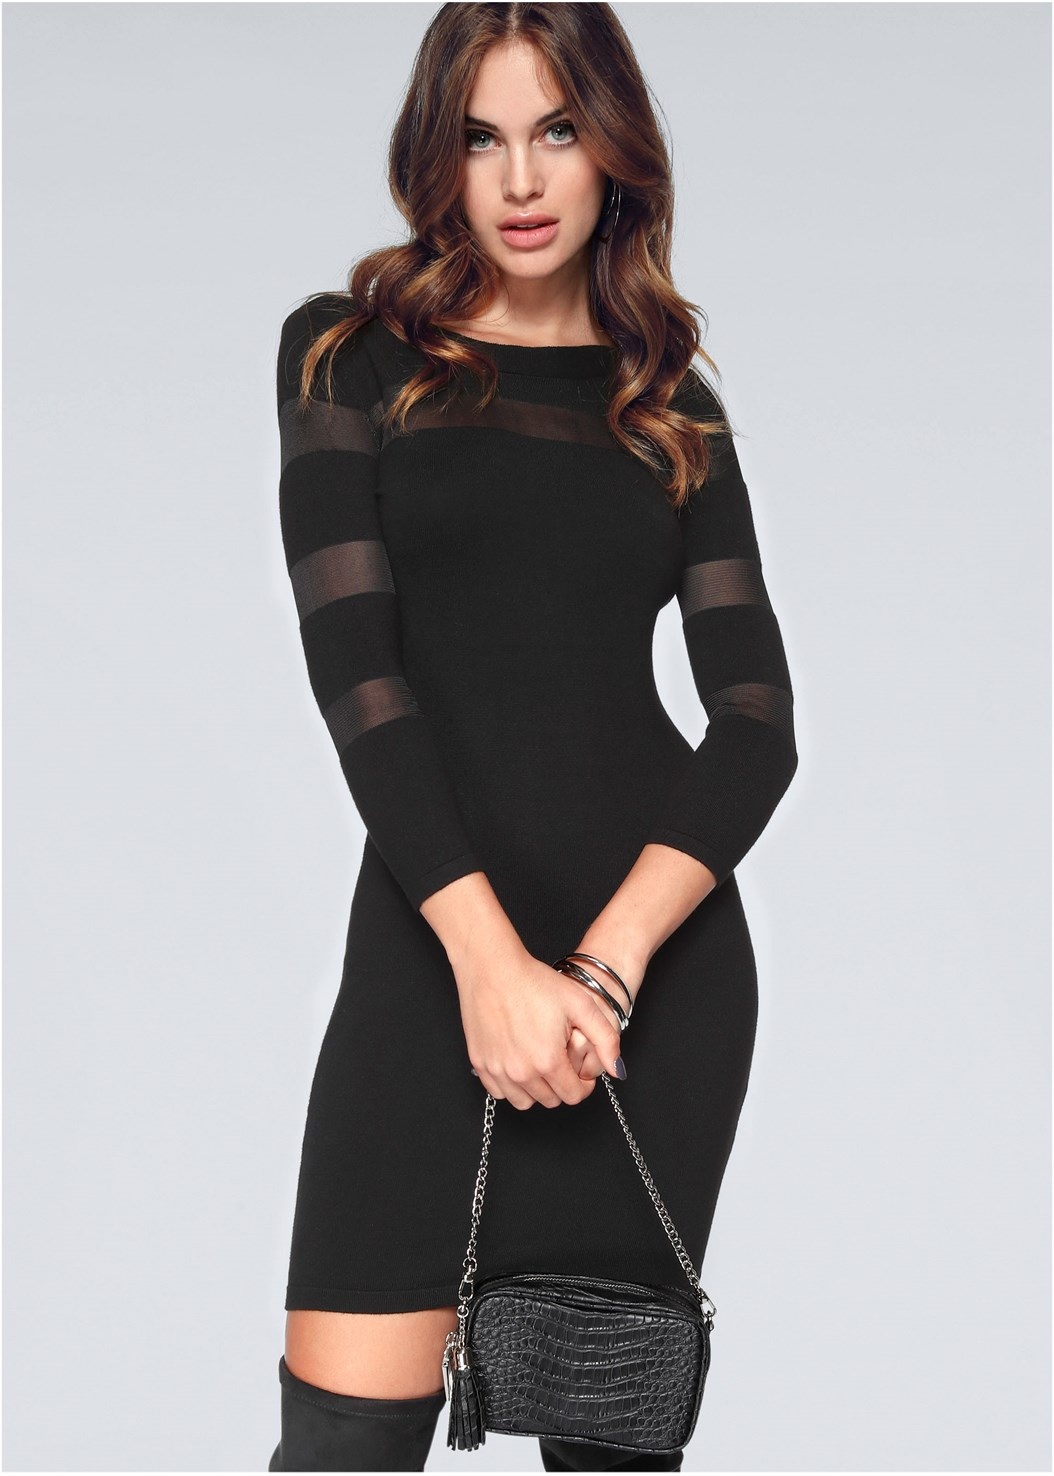 Mesh Detail Sweater Dress,Kissable Strappy Push Up,Block Heel Boots,Stud Detail Crossbody